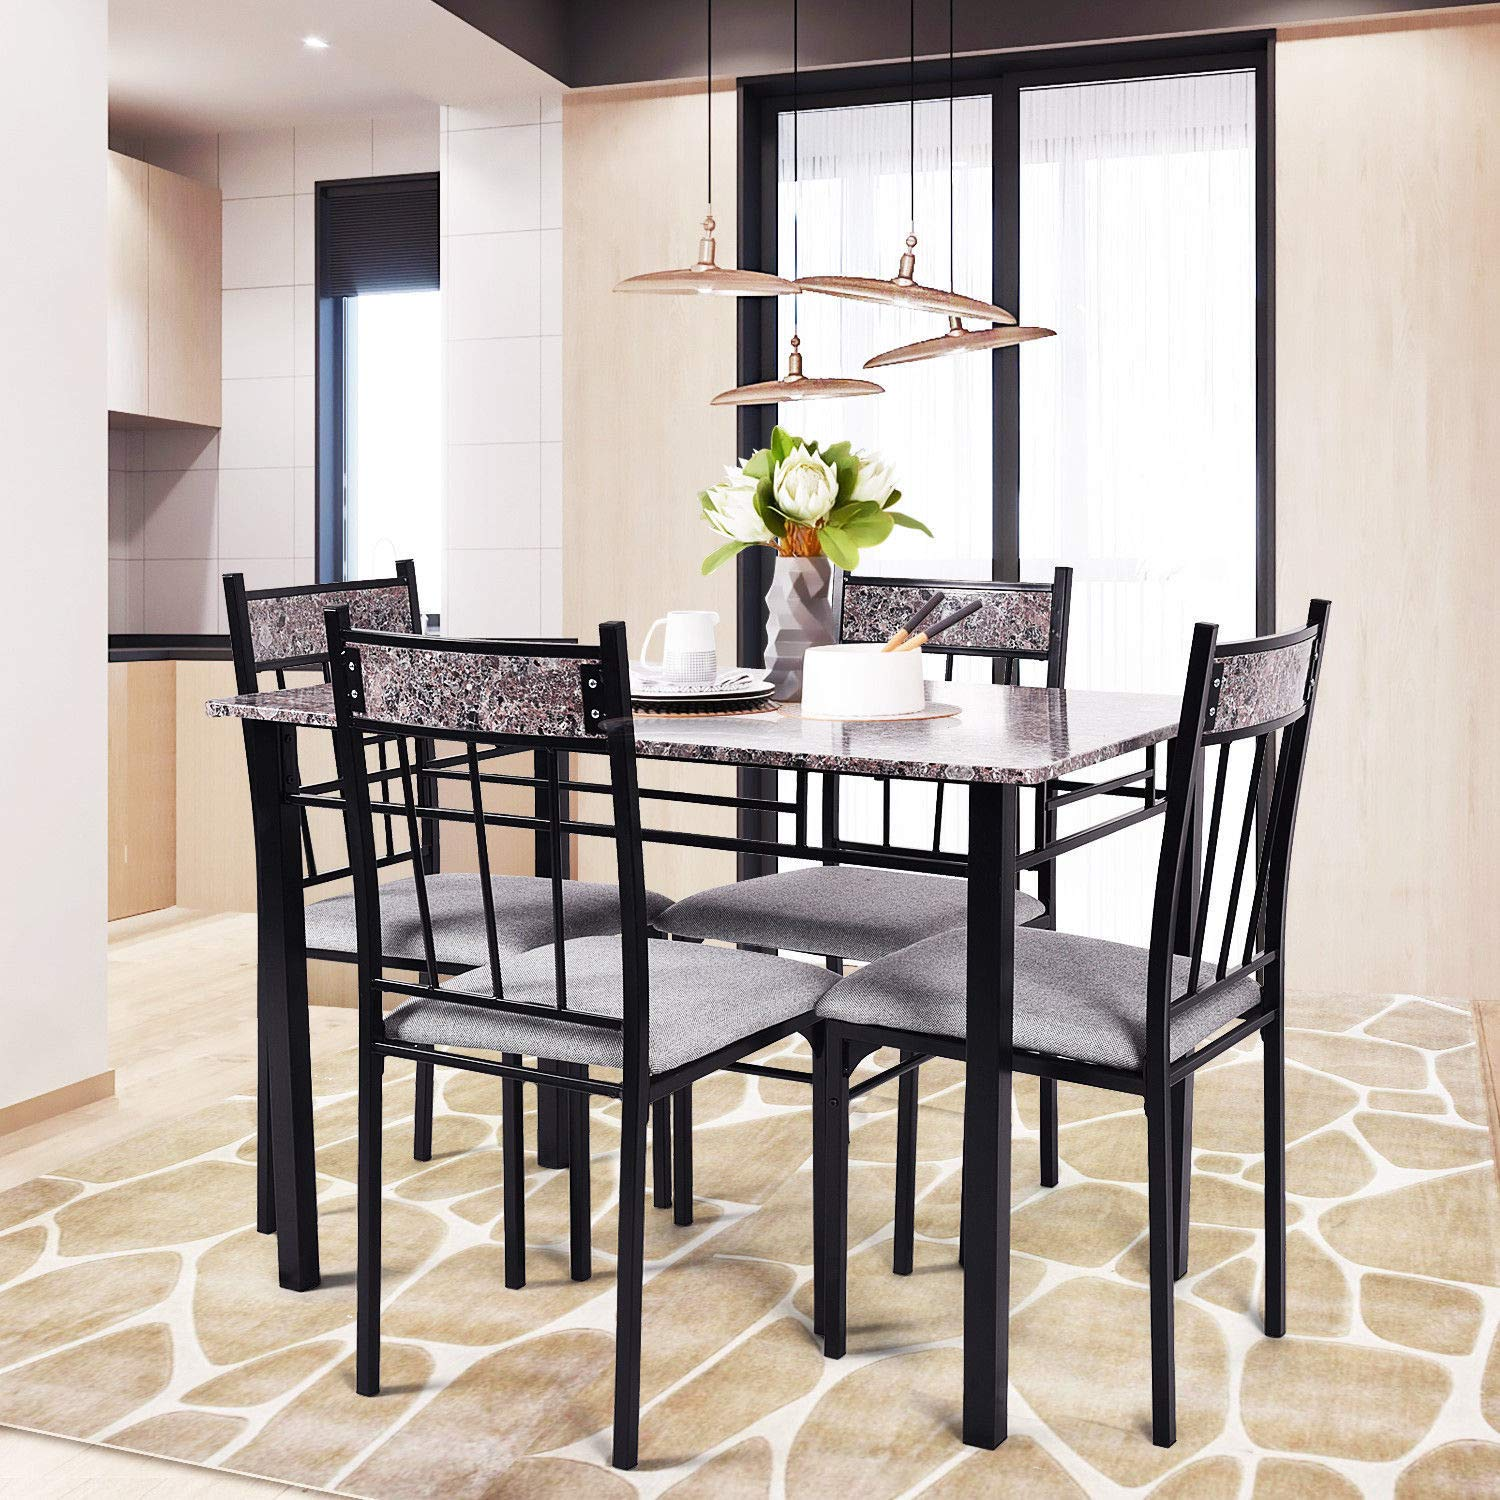 House Eats Stand Whit Stool 5 Piece PVC Marble Desktop Black Steel Cuisine Feed on Board 4 Backrest Gray Cloth Filled Seat Set of 5 Pcs Stylist Buffet Bar Table Chair